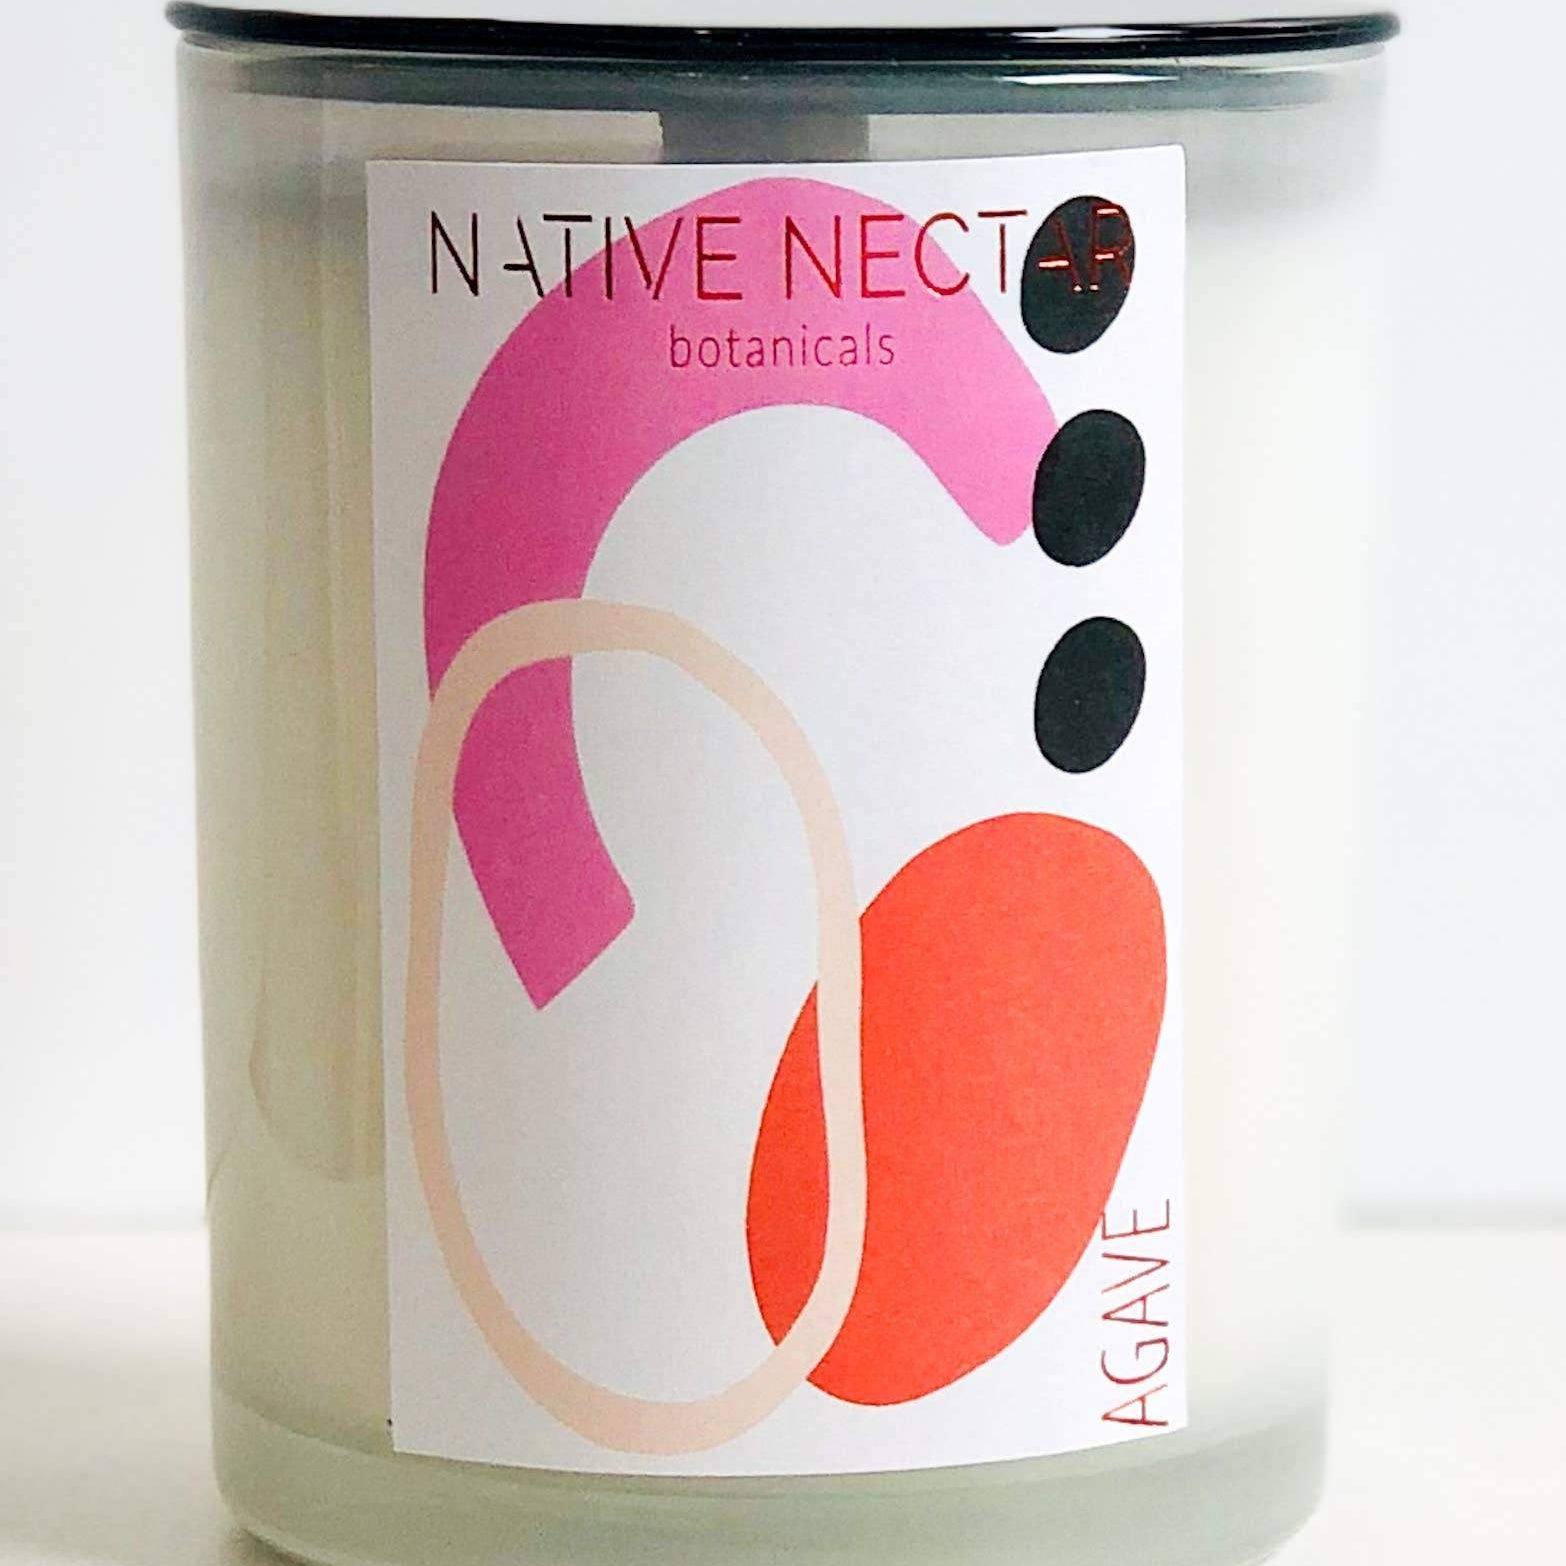 wood wick candle in a clear glass container with pink, orange, black and white graphic design label